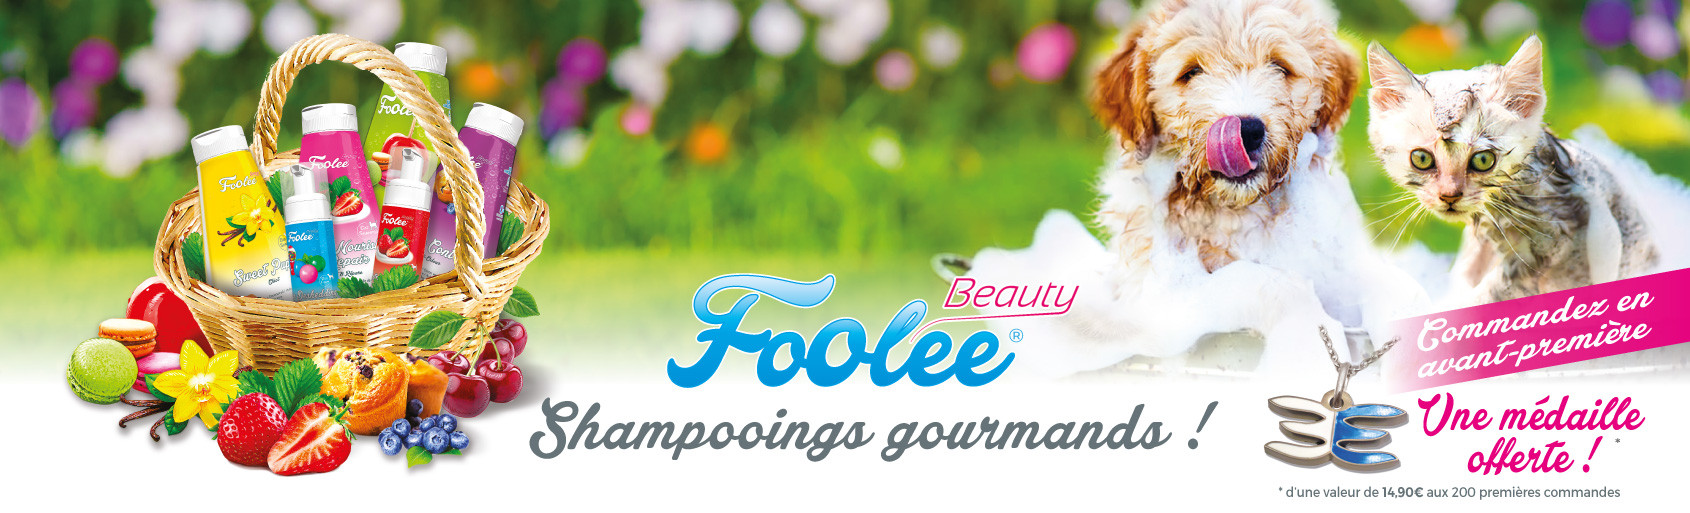 Foolee Beauty, Shampooings Gourmands !